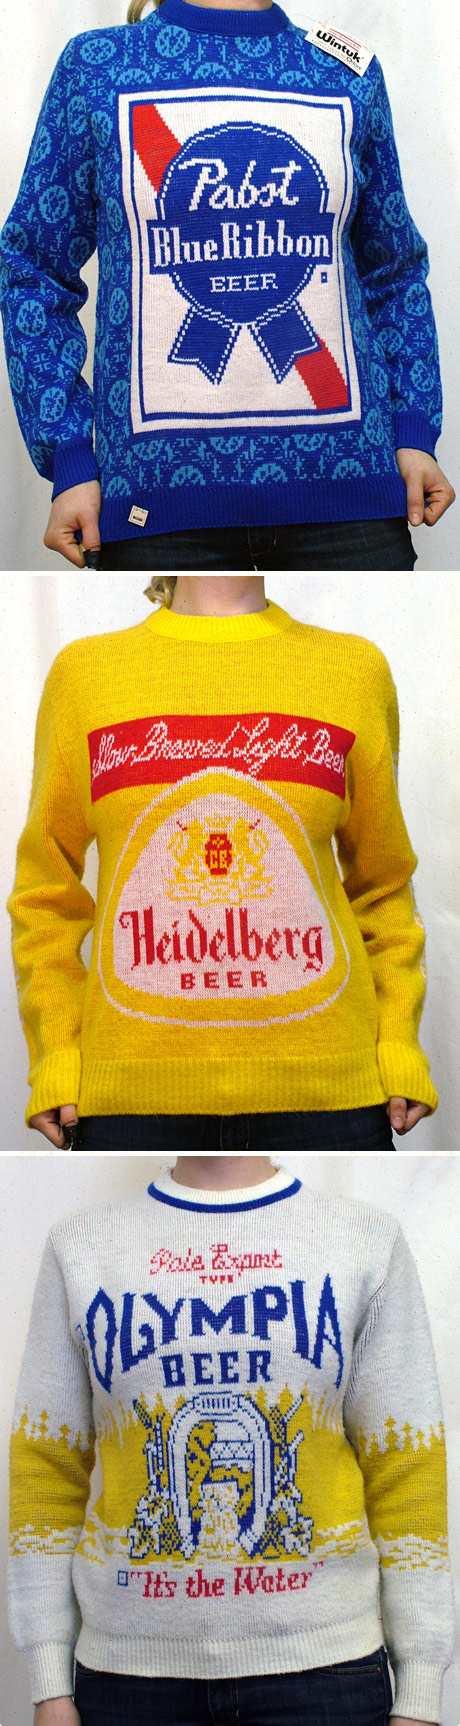 Beer / Drinking Jumpers